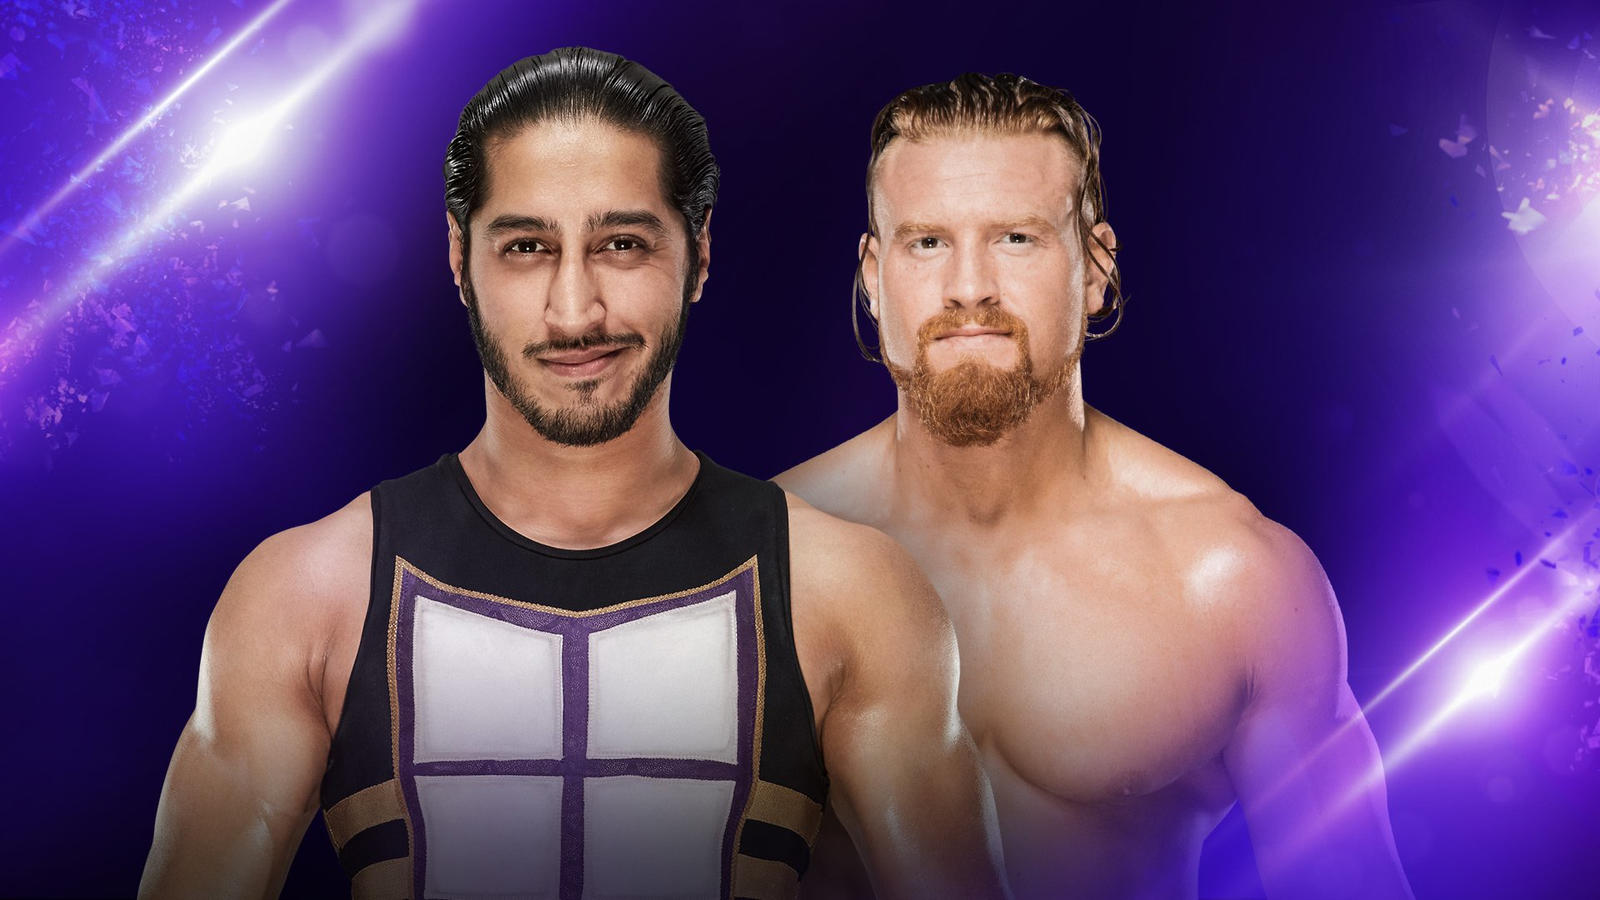 Will it be the Heart or the Secret that reaches the Cruiserweight Champion?